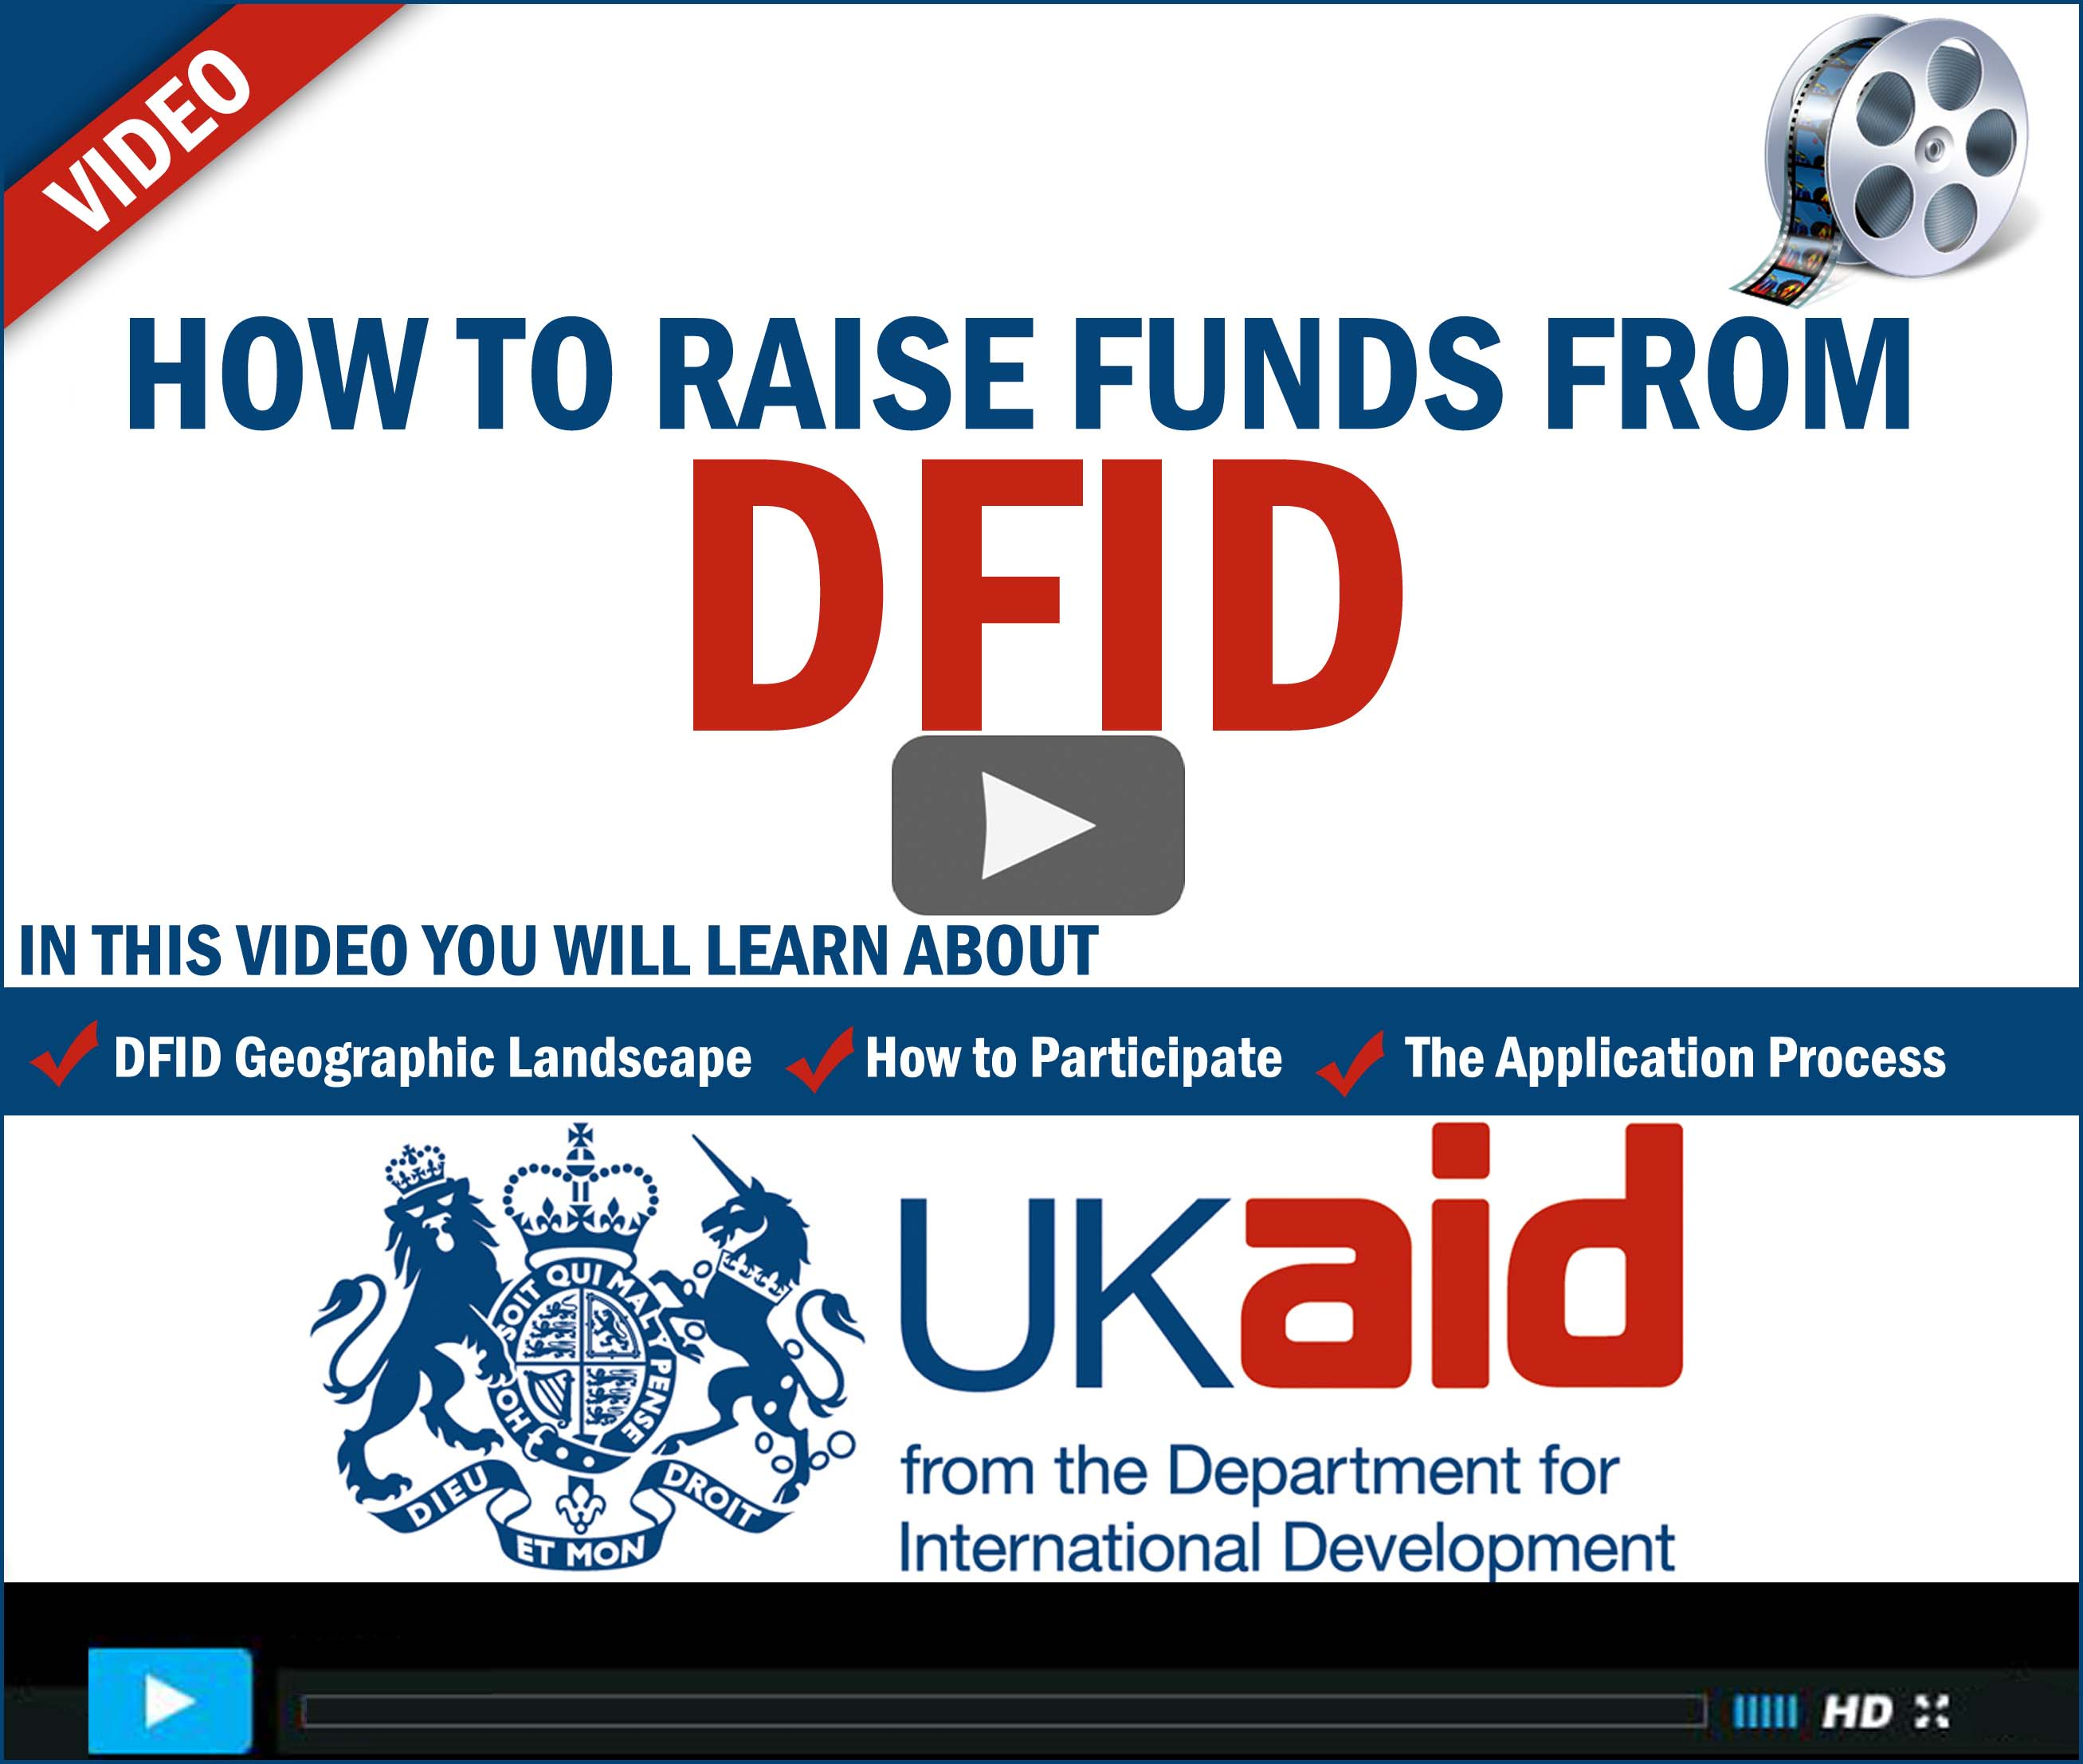 How-to-Raise-Funds-from-DFID